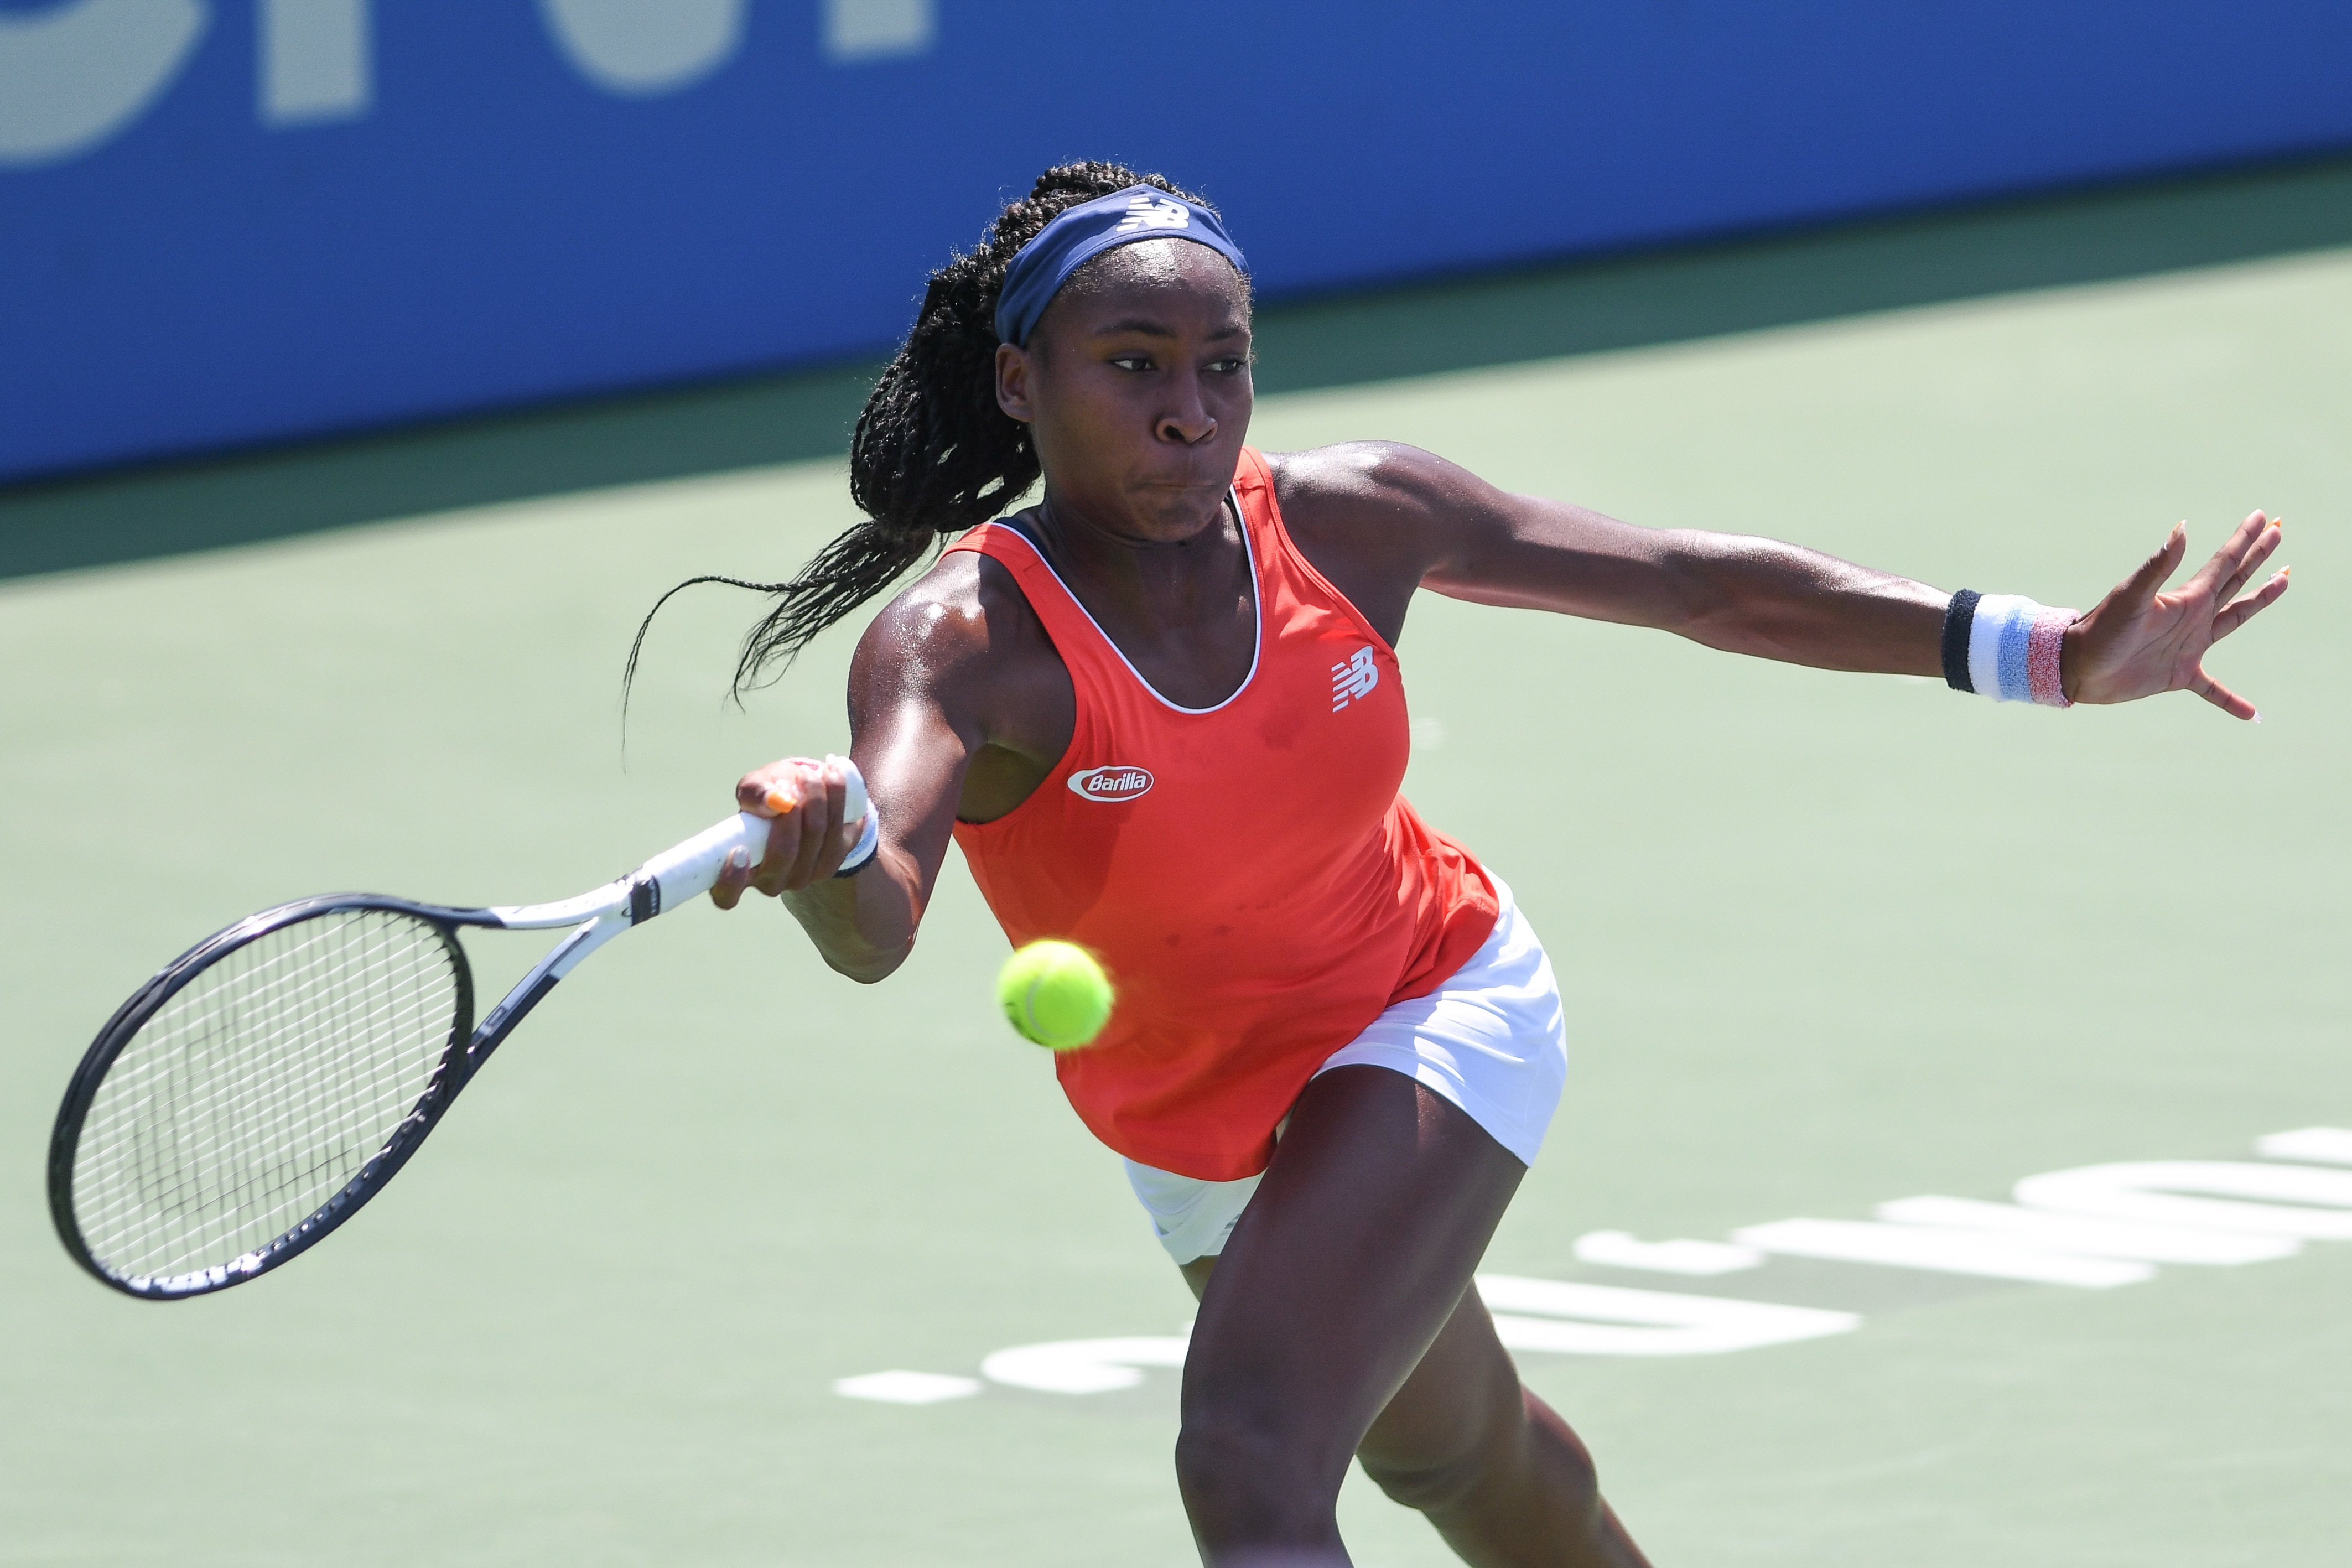 Teenage tennis star Coco Gauff to feature at the 2020 Citi Open